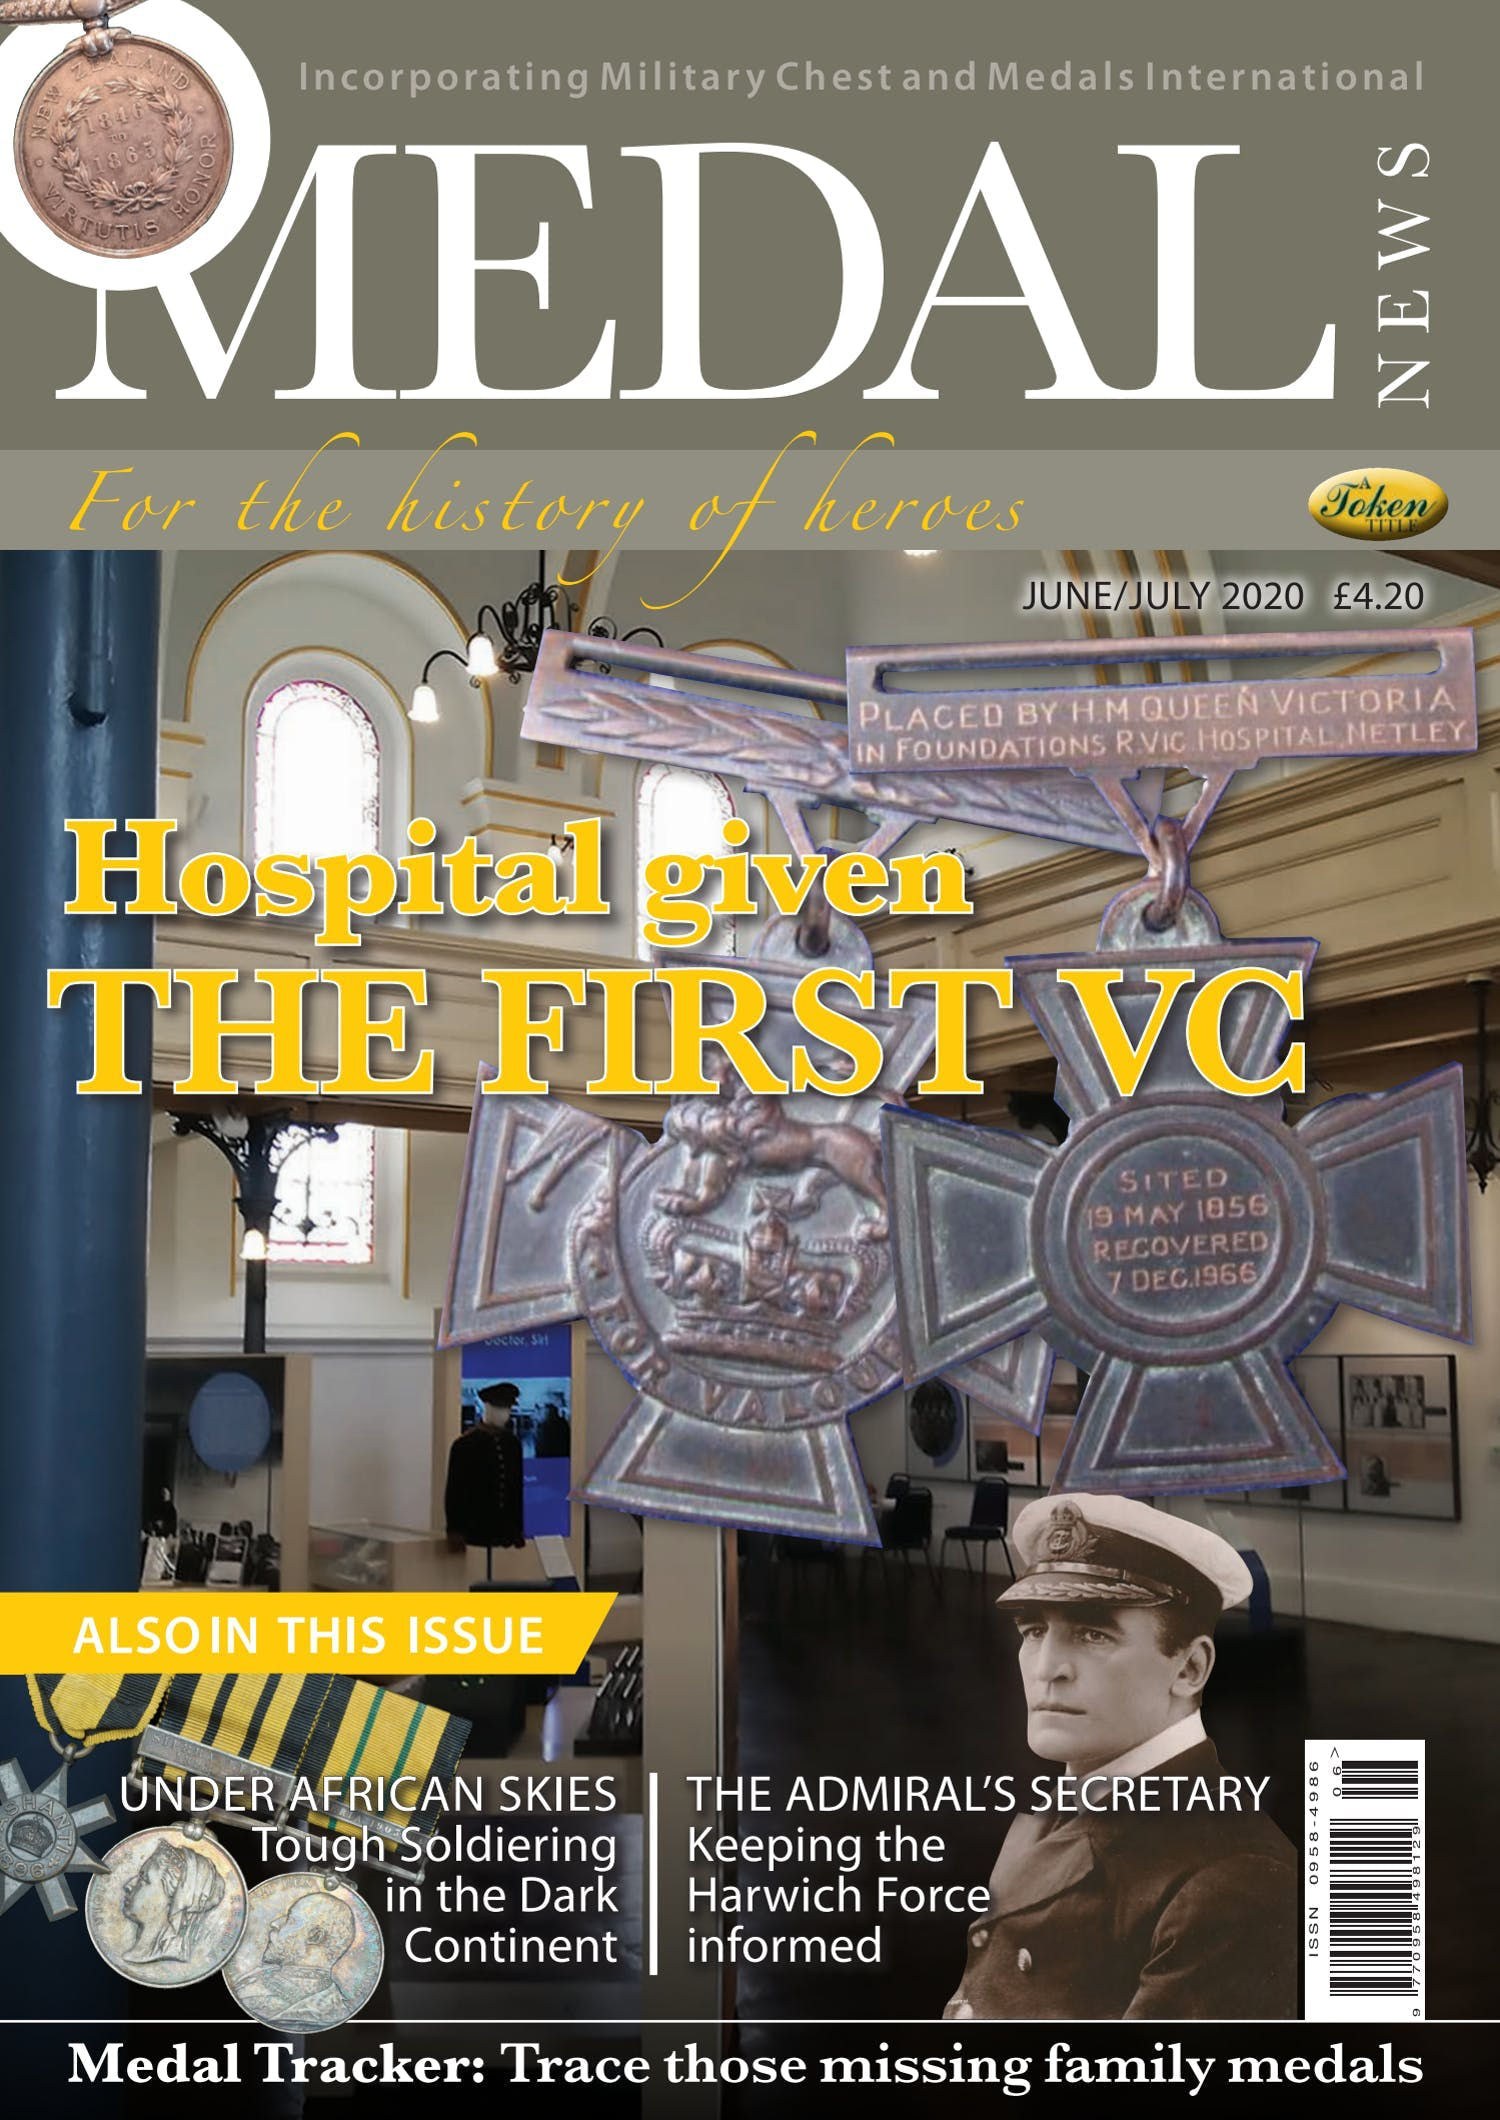 Front cover of 'Hospital given the first VC', Medal News June 2020, Volume 58, Number 6 by Token Publishing